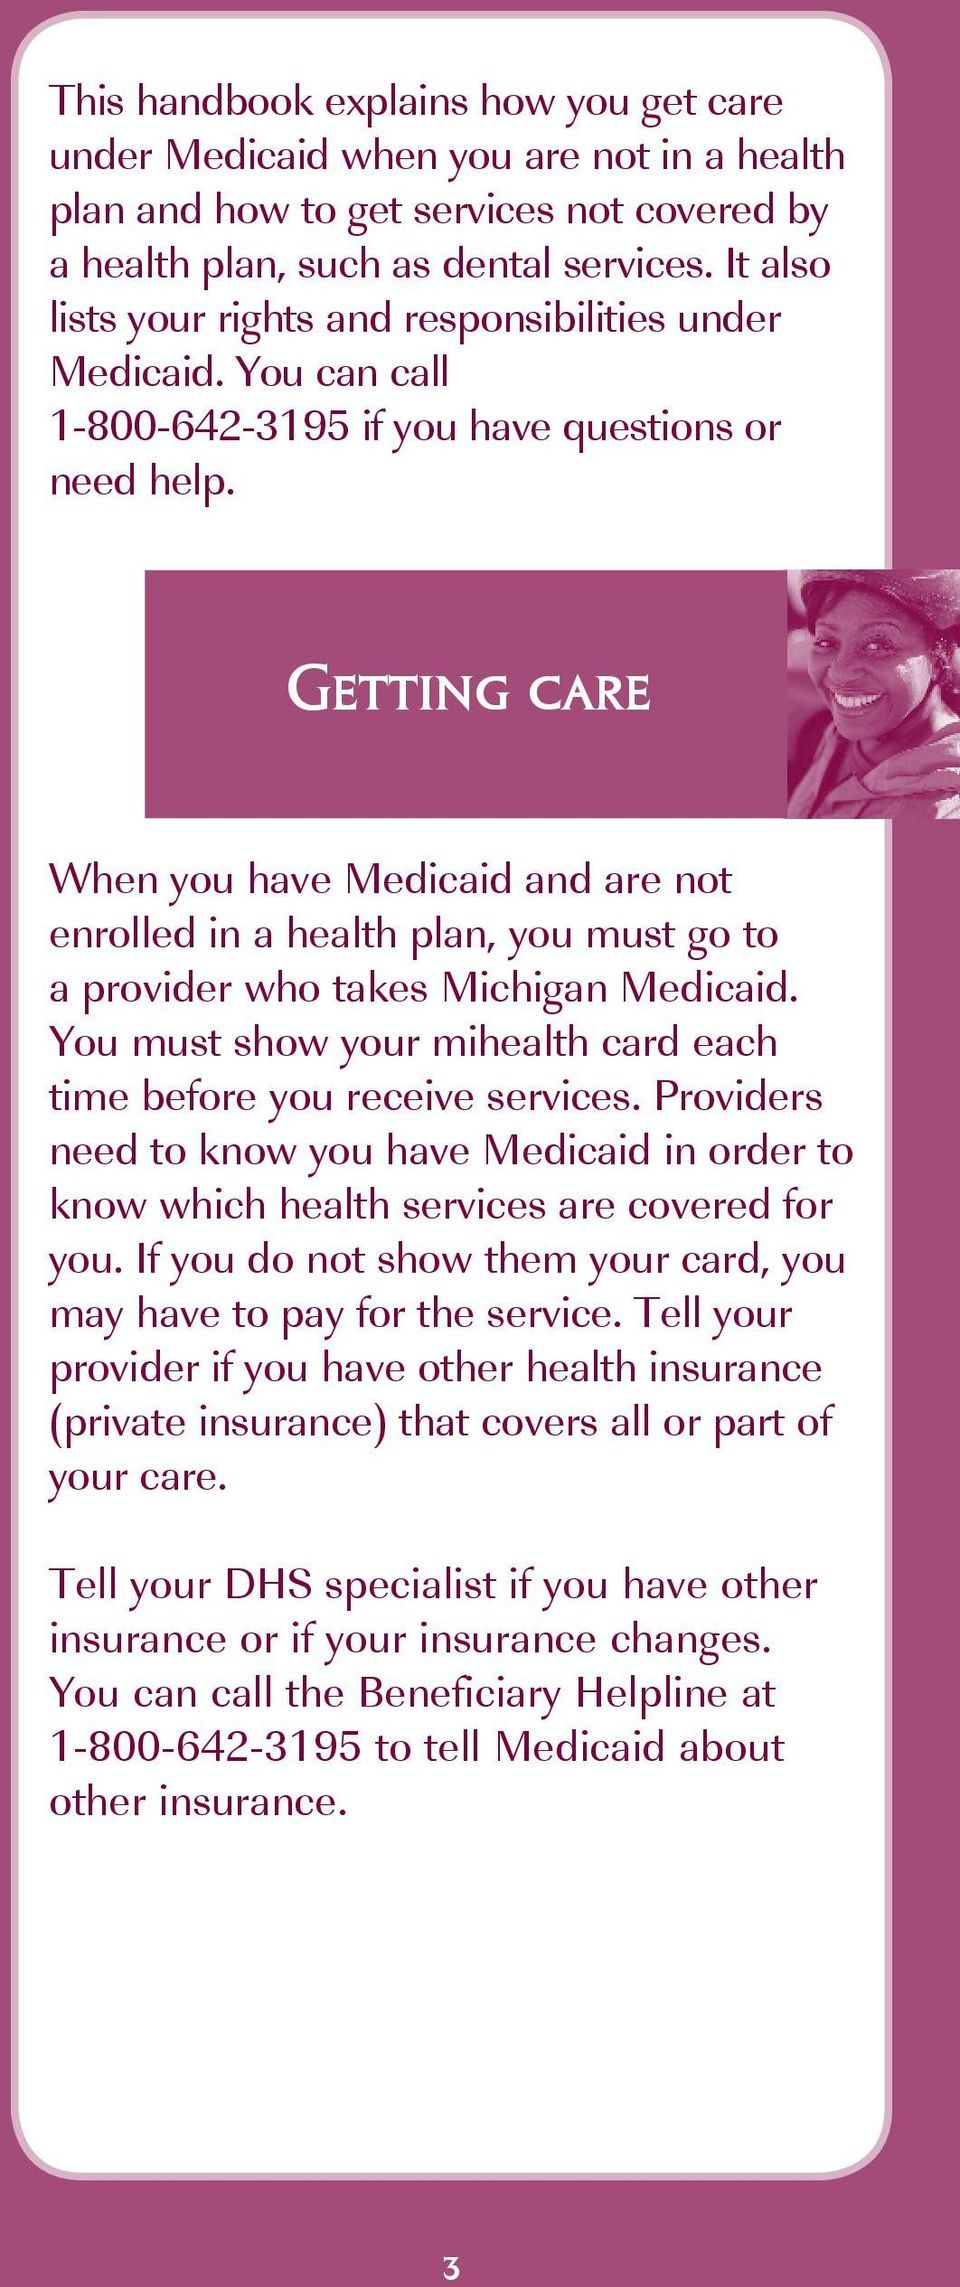 Getting care When you have Medicaid and are not enrolled in a health plan, you must go to a provider who takes Michigan Medicaid.